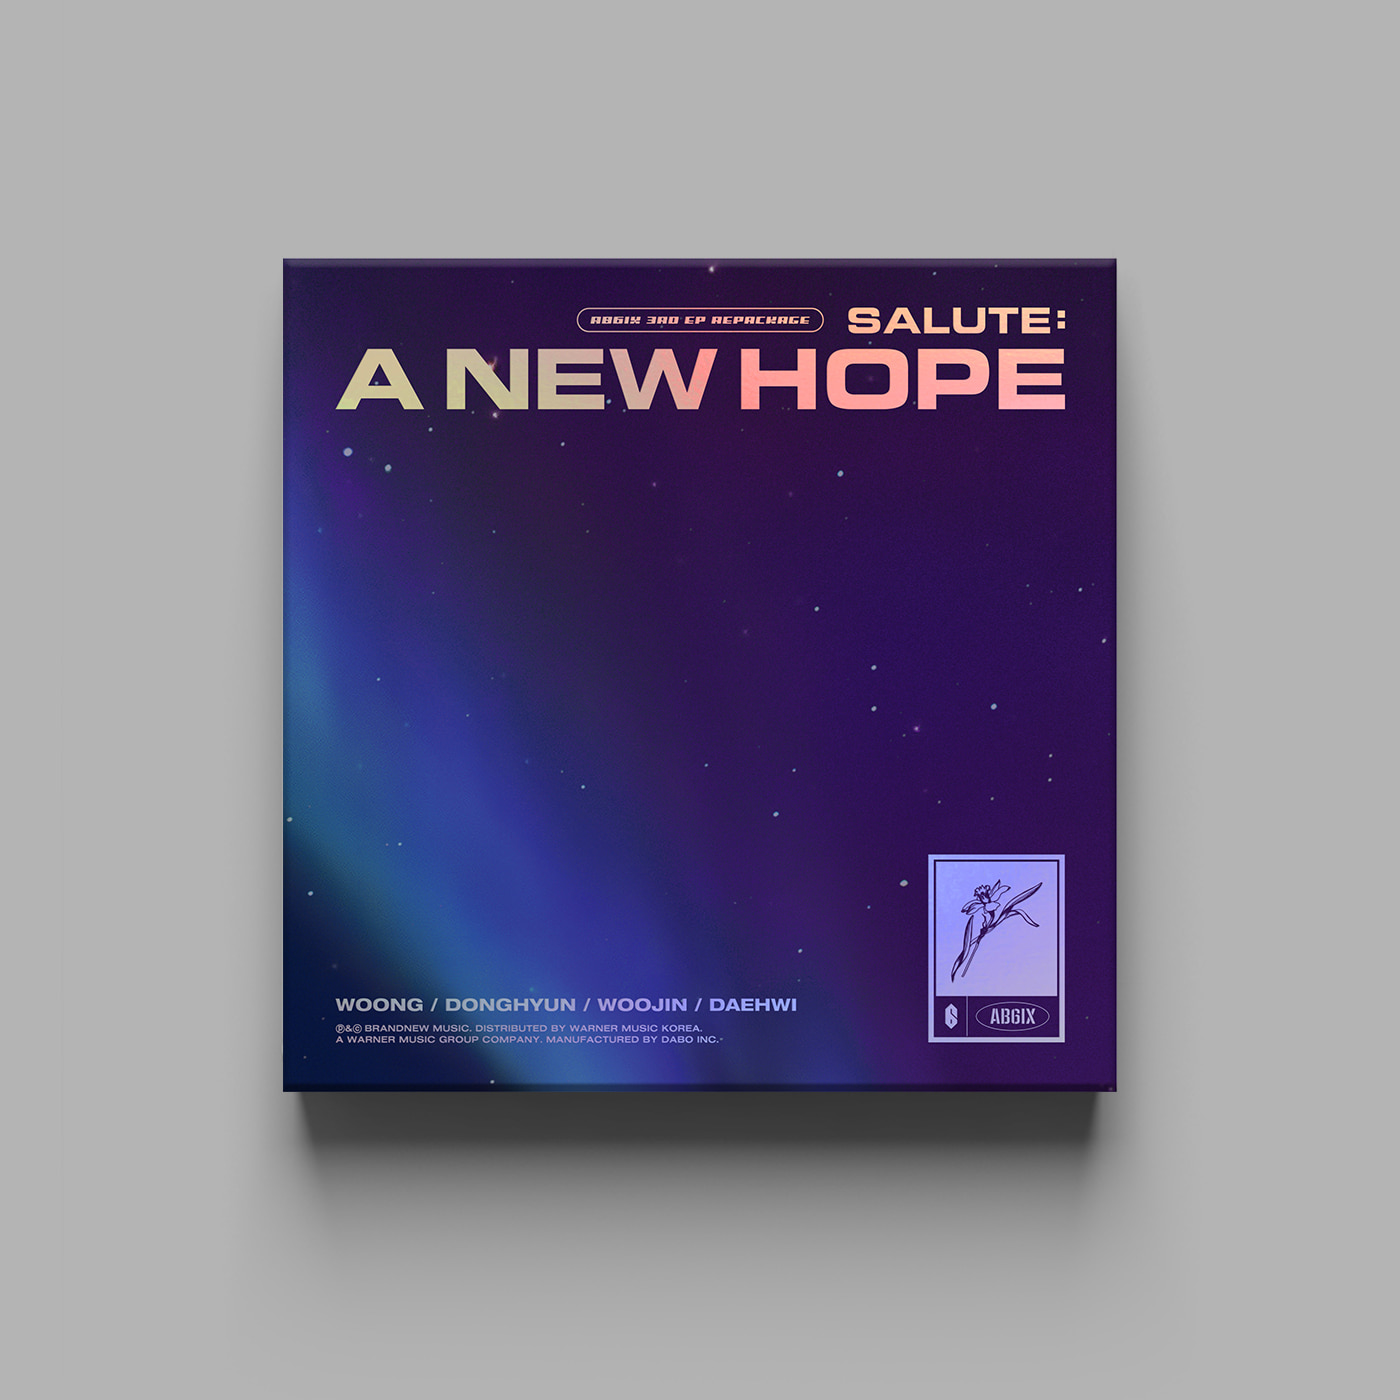 에이비식스(AB6IX) - 3RD EP REPACKAGE [SALUTE : A NEW HOPE] (HOPE Ver.)케이팝스토어(kpop store)